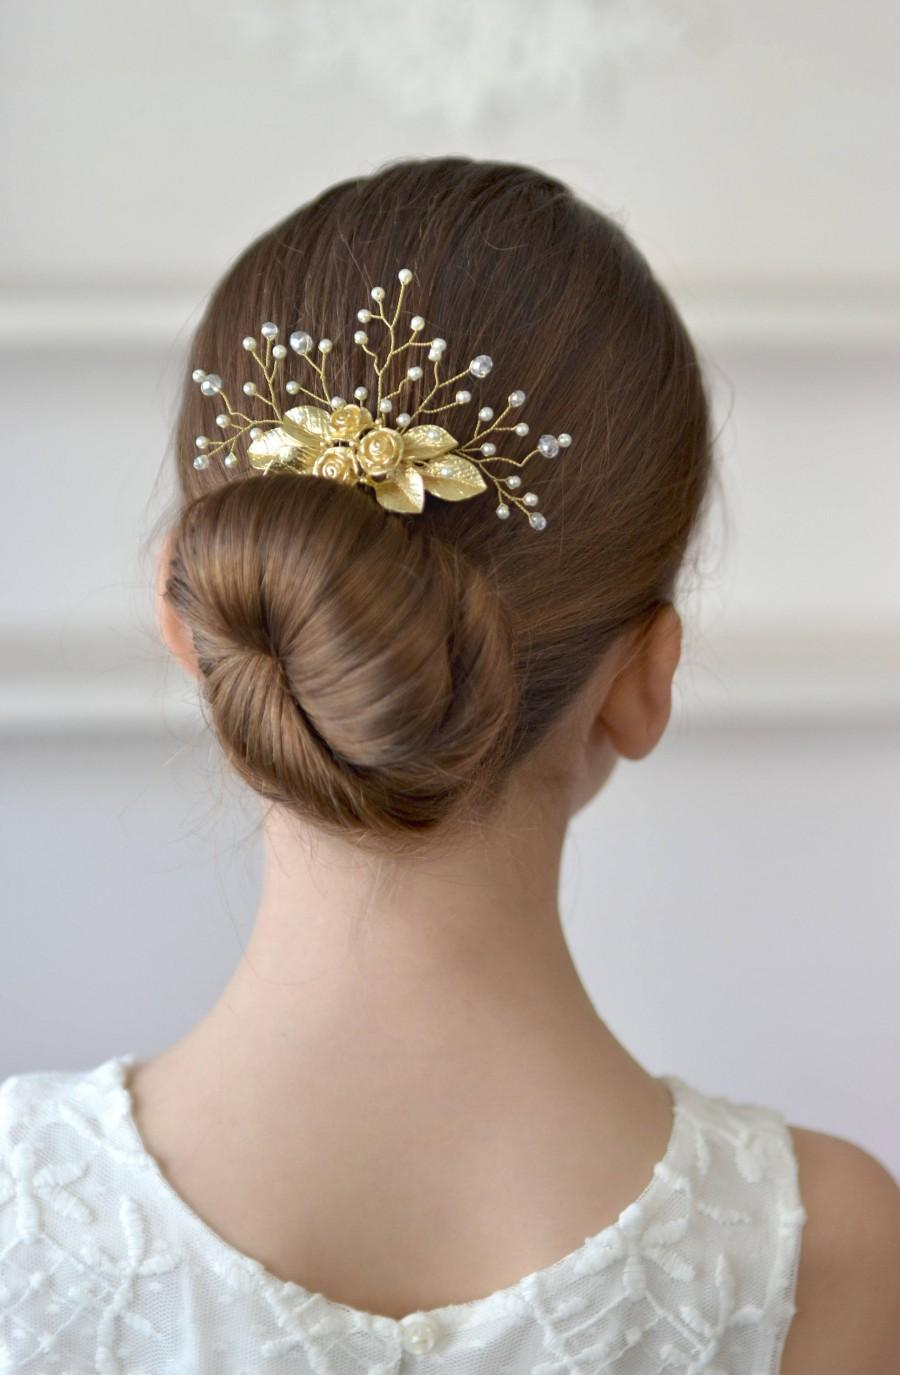 Mariage - Wedding comb Gold roses hair comb pearl vines hair back Bridal head piece gold lieves hair comb exquisite - $31.00 USD